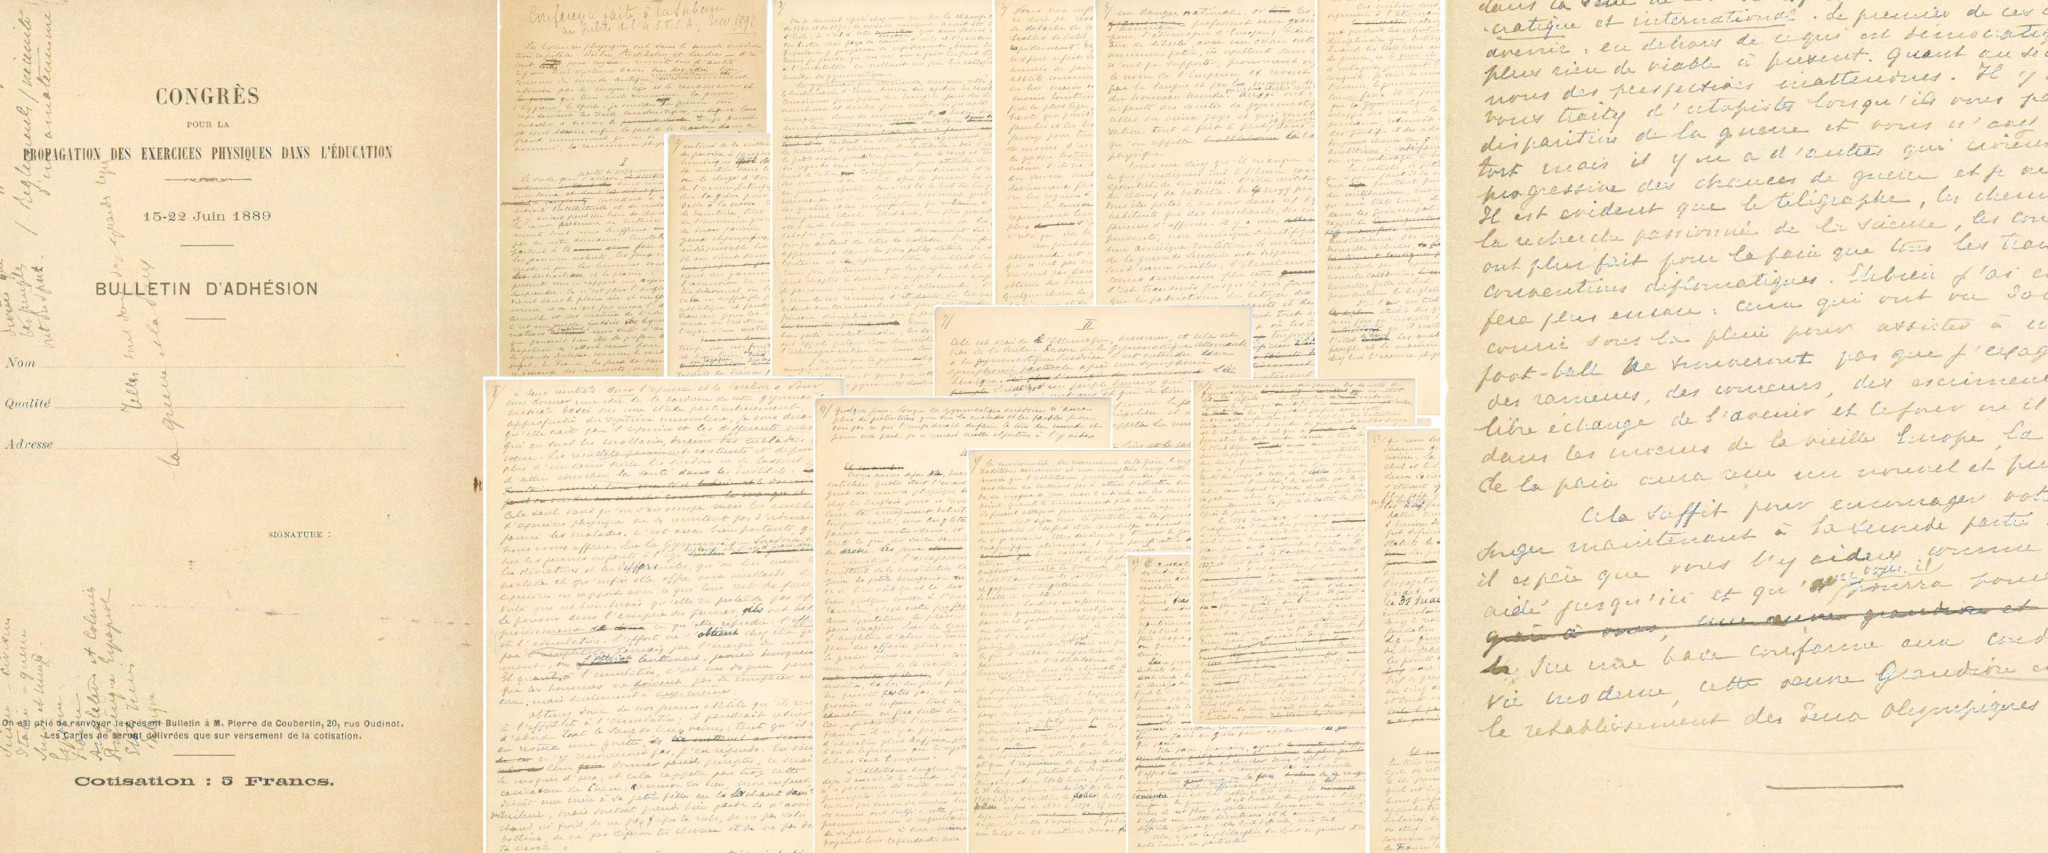 The manifesto written by Baron Pierre de Coubertin which led to the revival of the Olympic Games sold at auction last December for a record $8,806,500 ©IOC